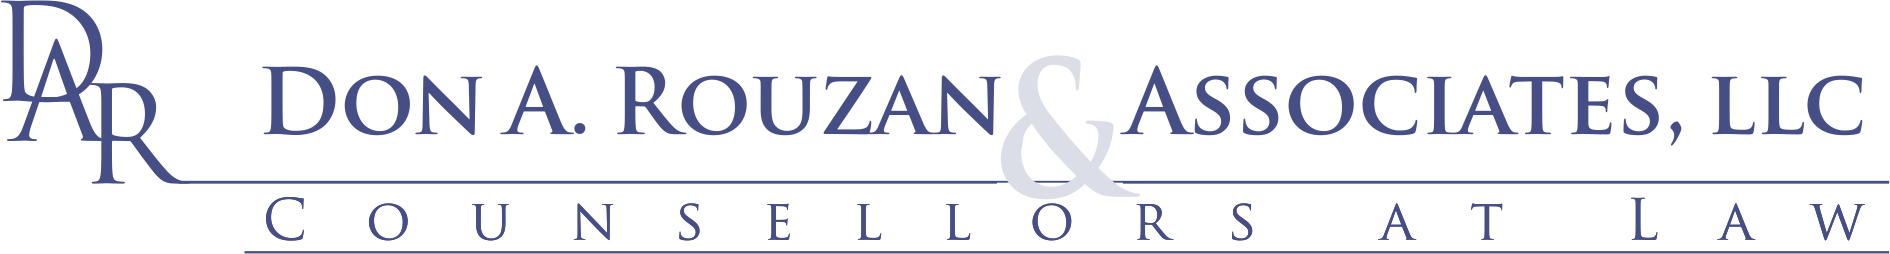 Don A. Rouzan & Associates, LLC